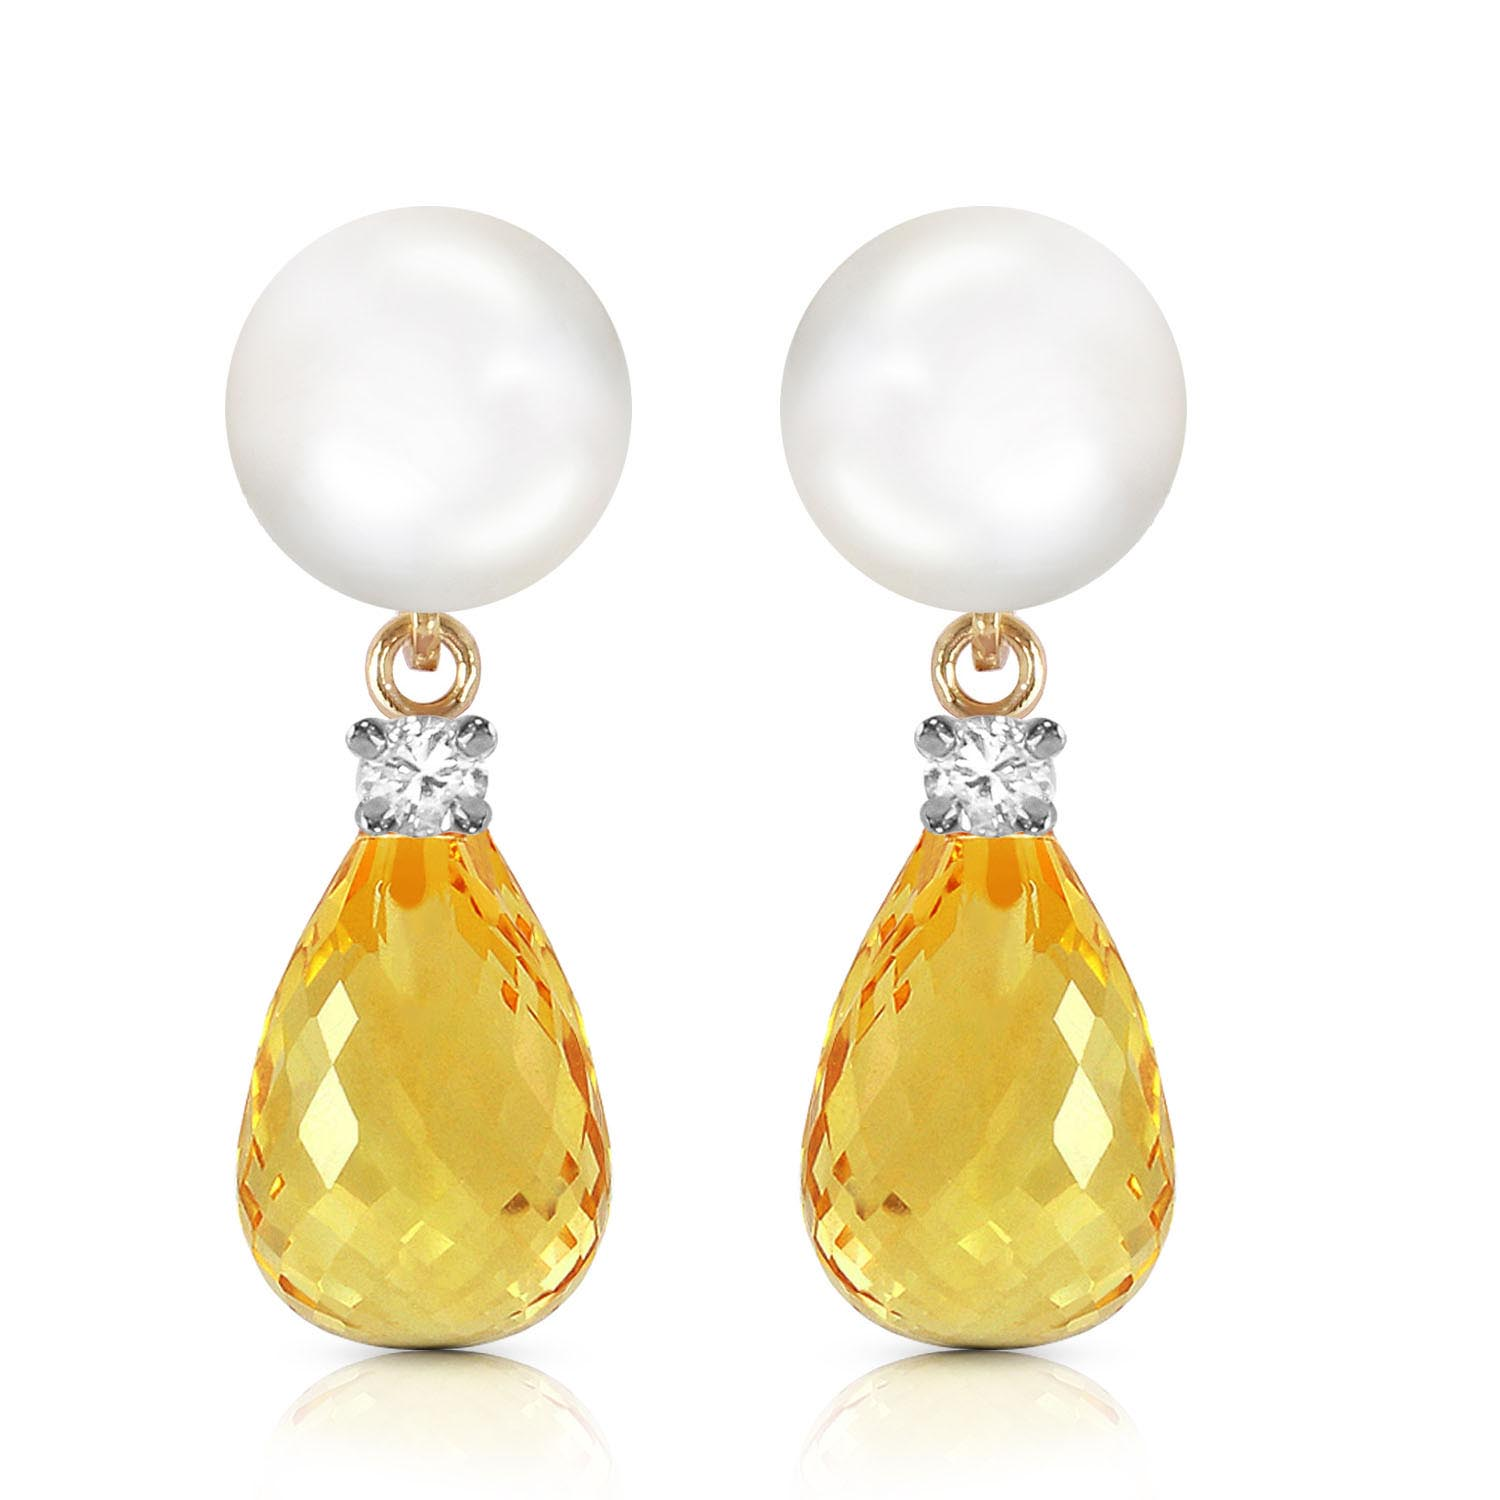 Pearl, Diamond and Citrine Stud Earrings 6.5ctw in 9ct Gold